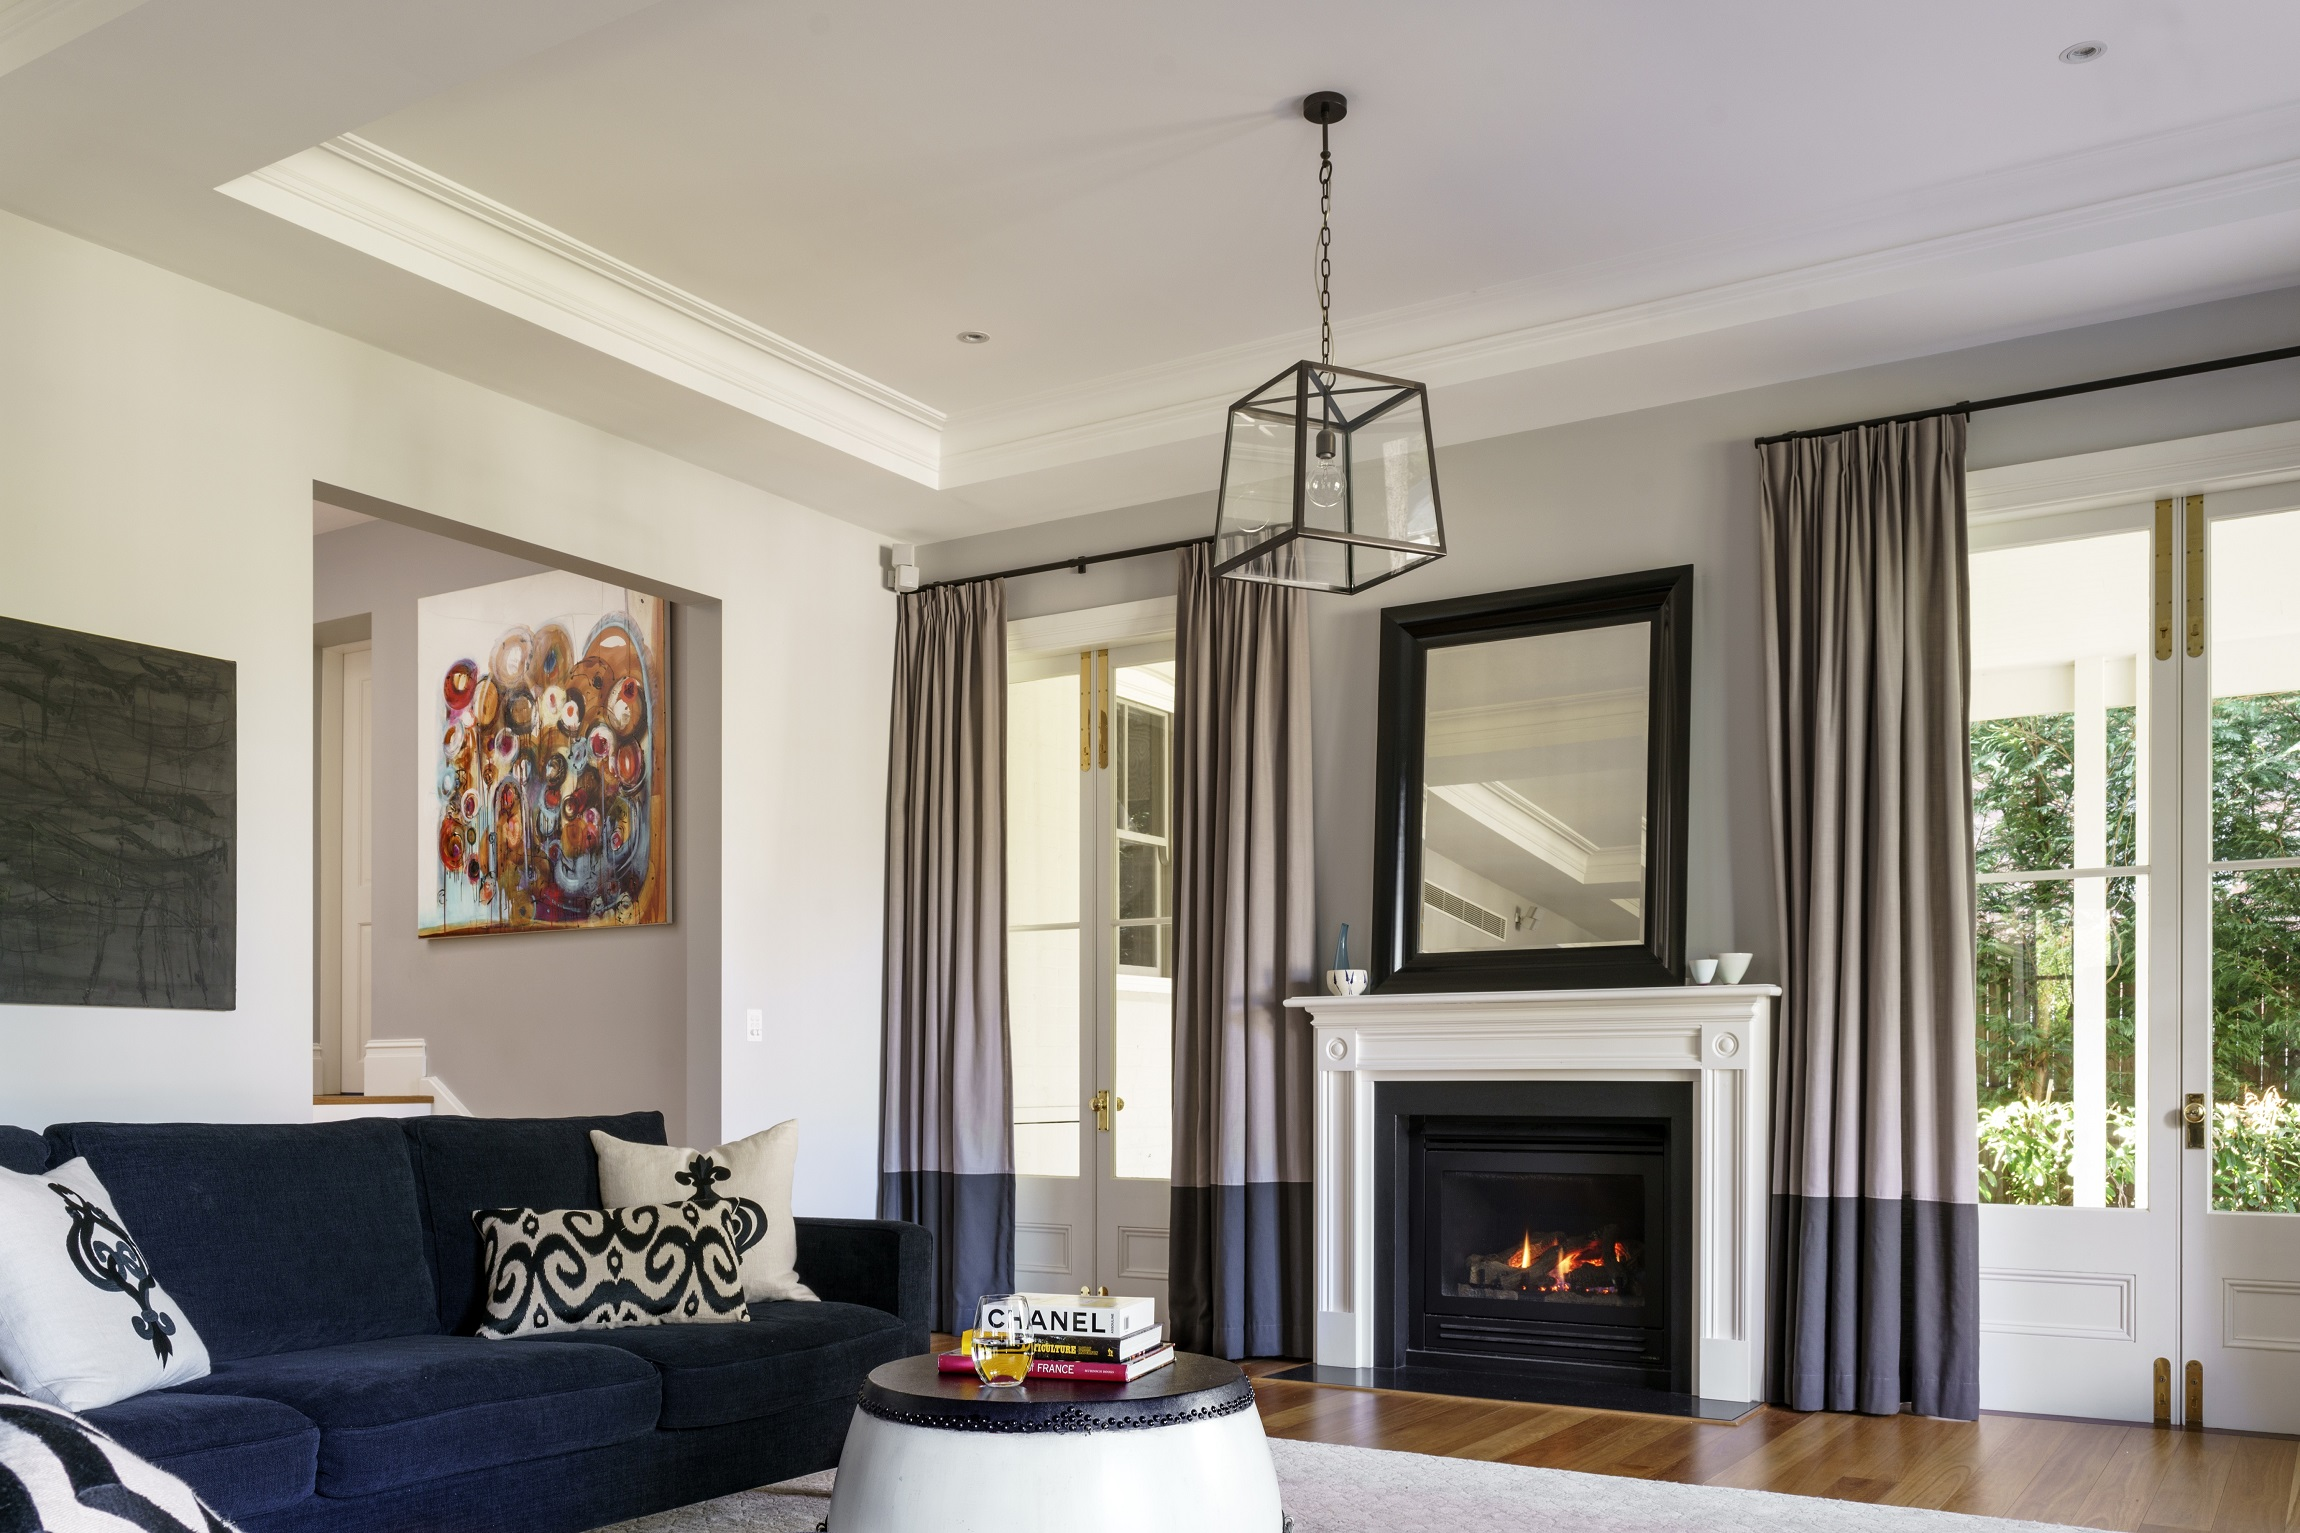 100-Year-Old-Heritage-Home-Restoration-Living-Art-Michael-Bell-Architects-Sydney